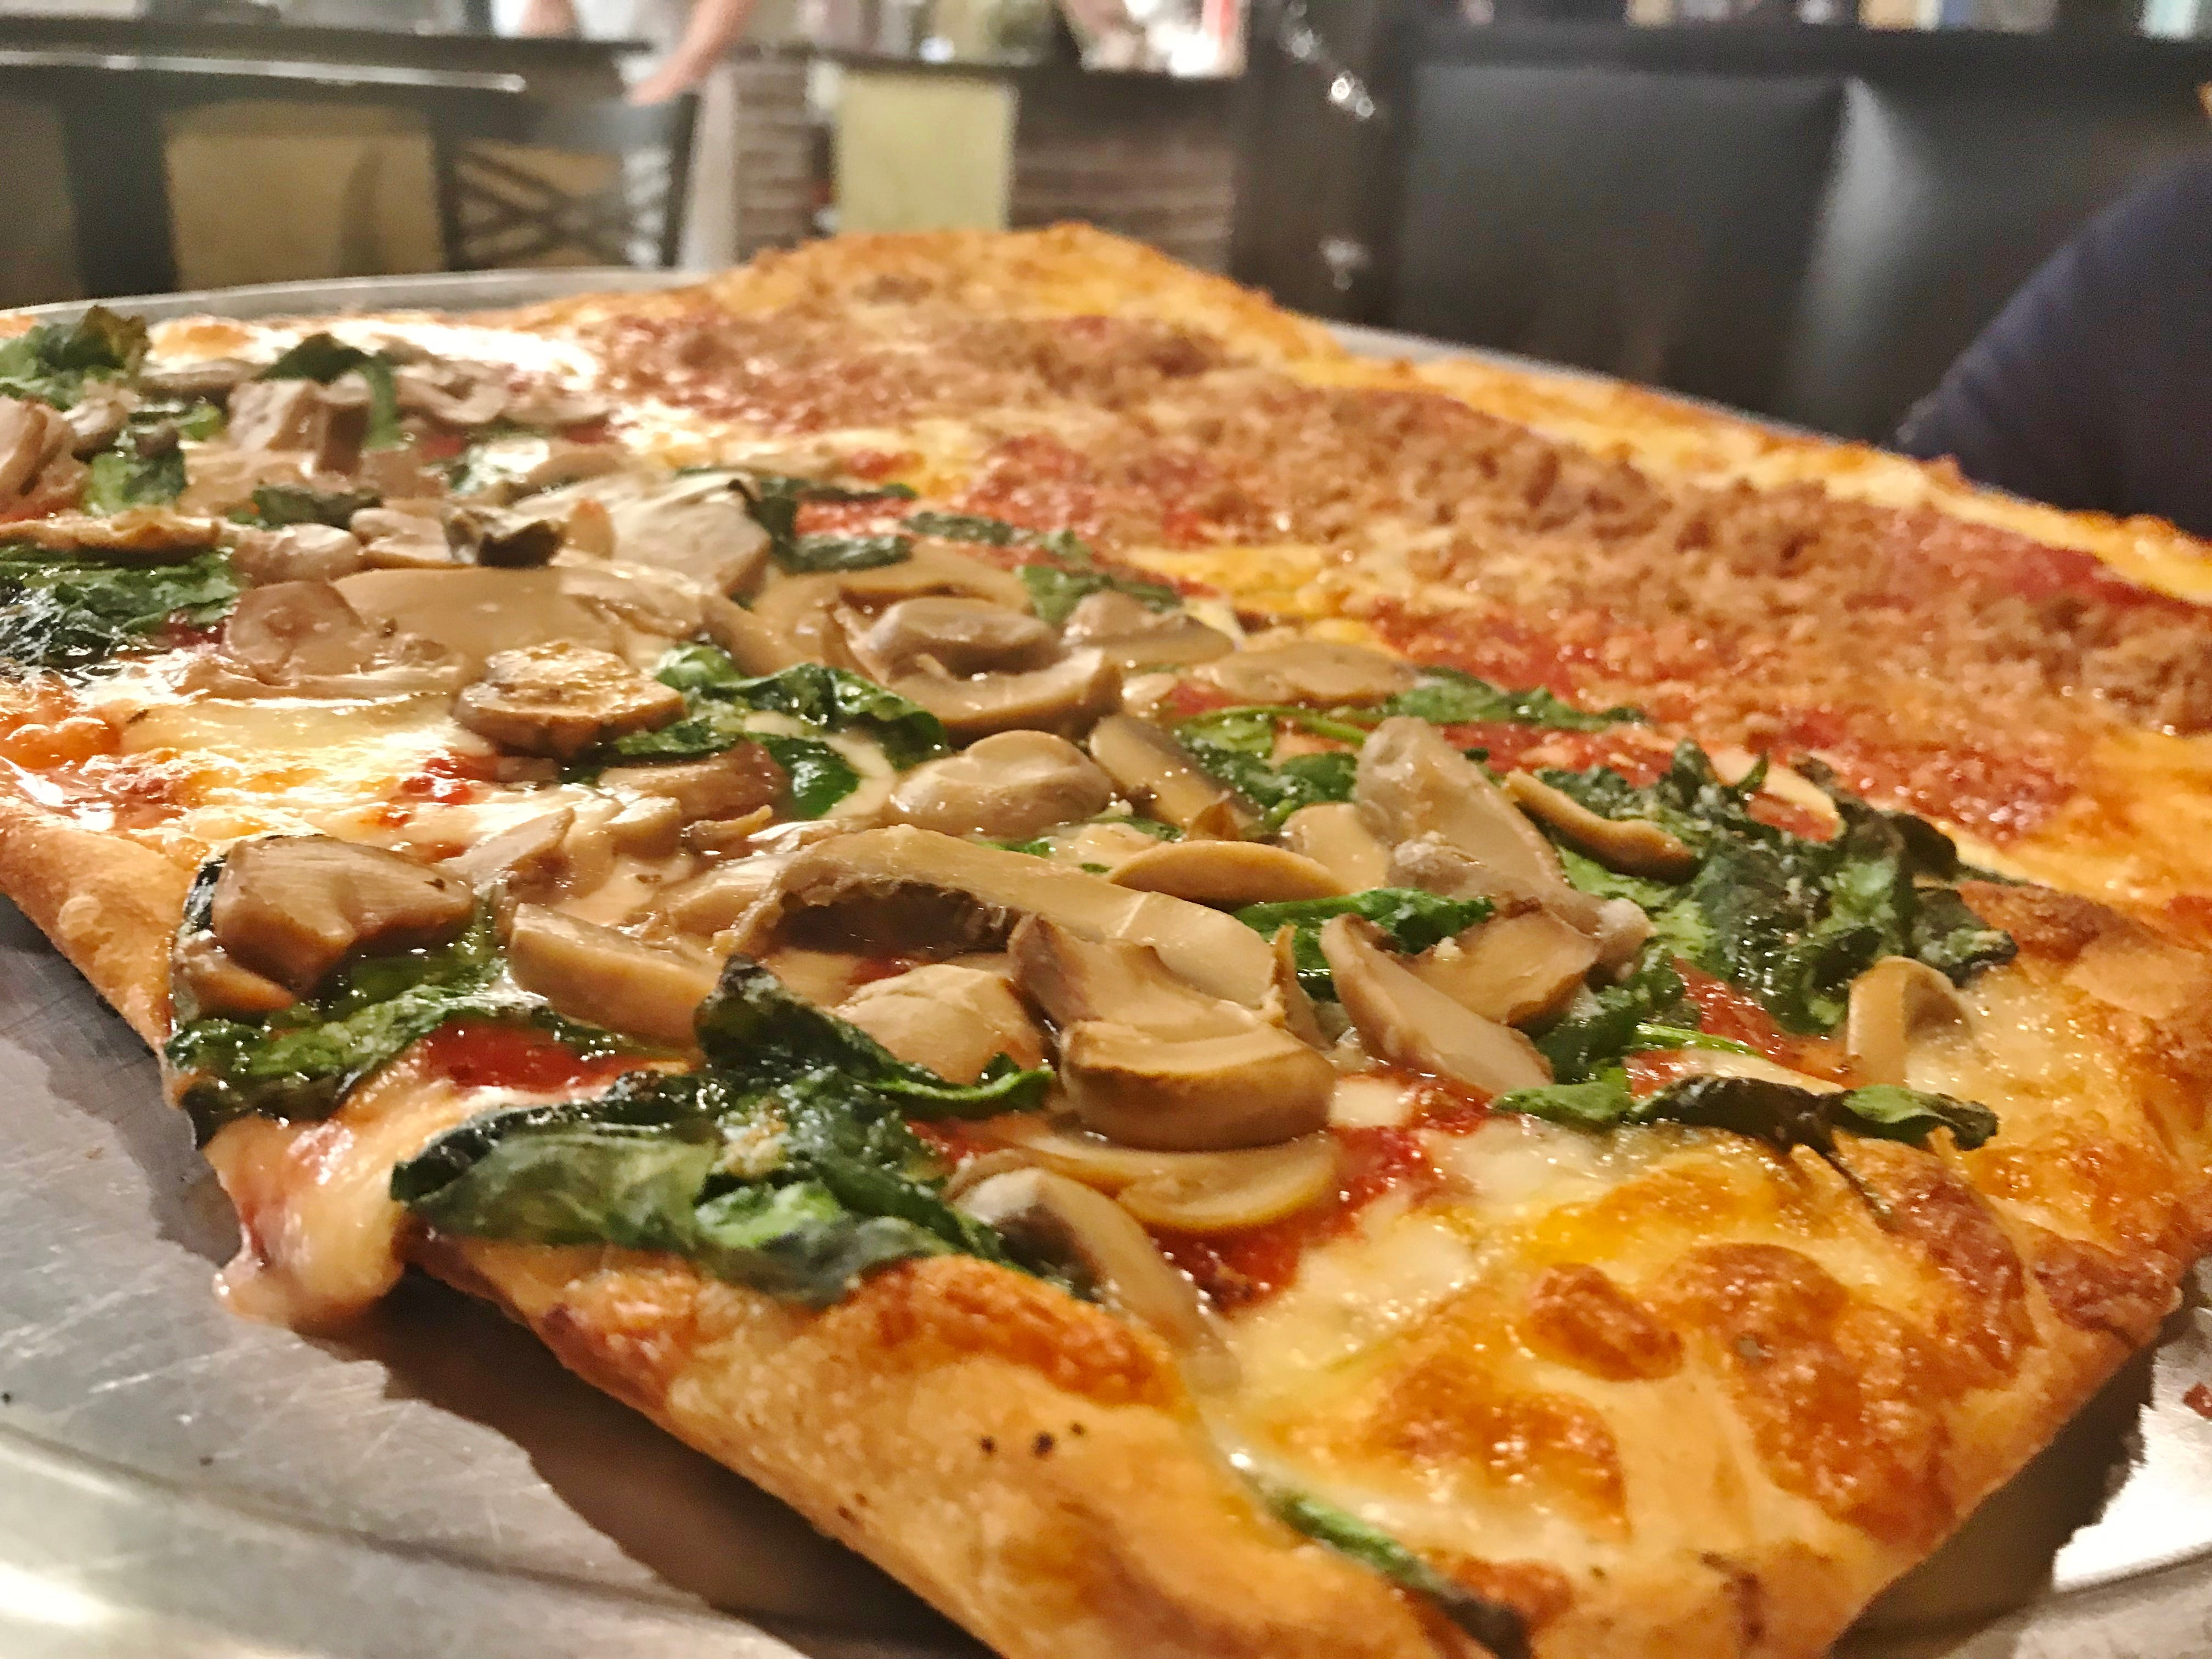 The grandma pizza is a thin-crust square pizza with housemade tomato sauce and cheese. Frank & Al's Pizza has two locations, one in Port St. Lucie and the other in Fort Pierce.